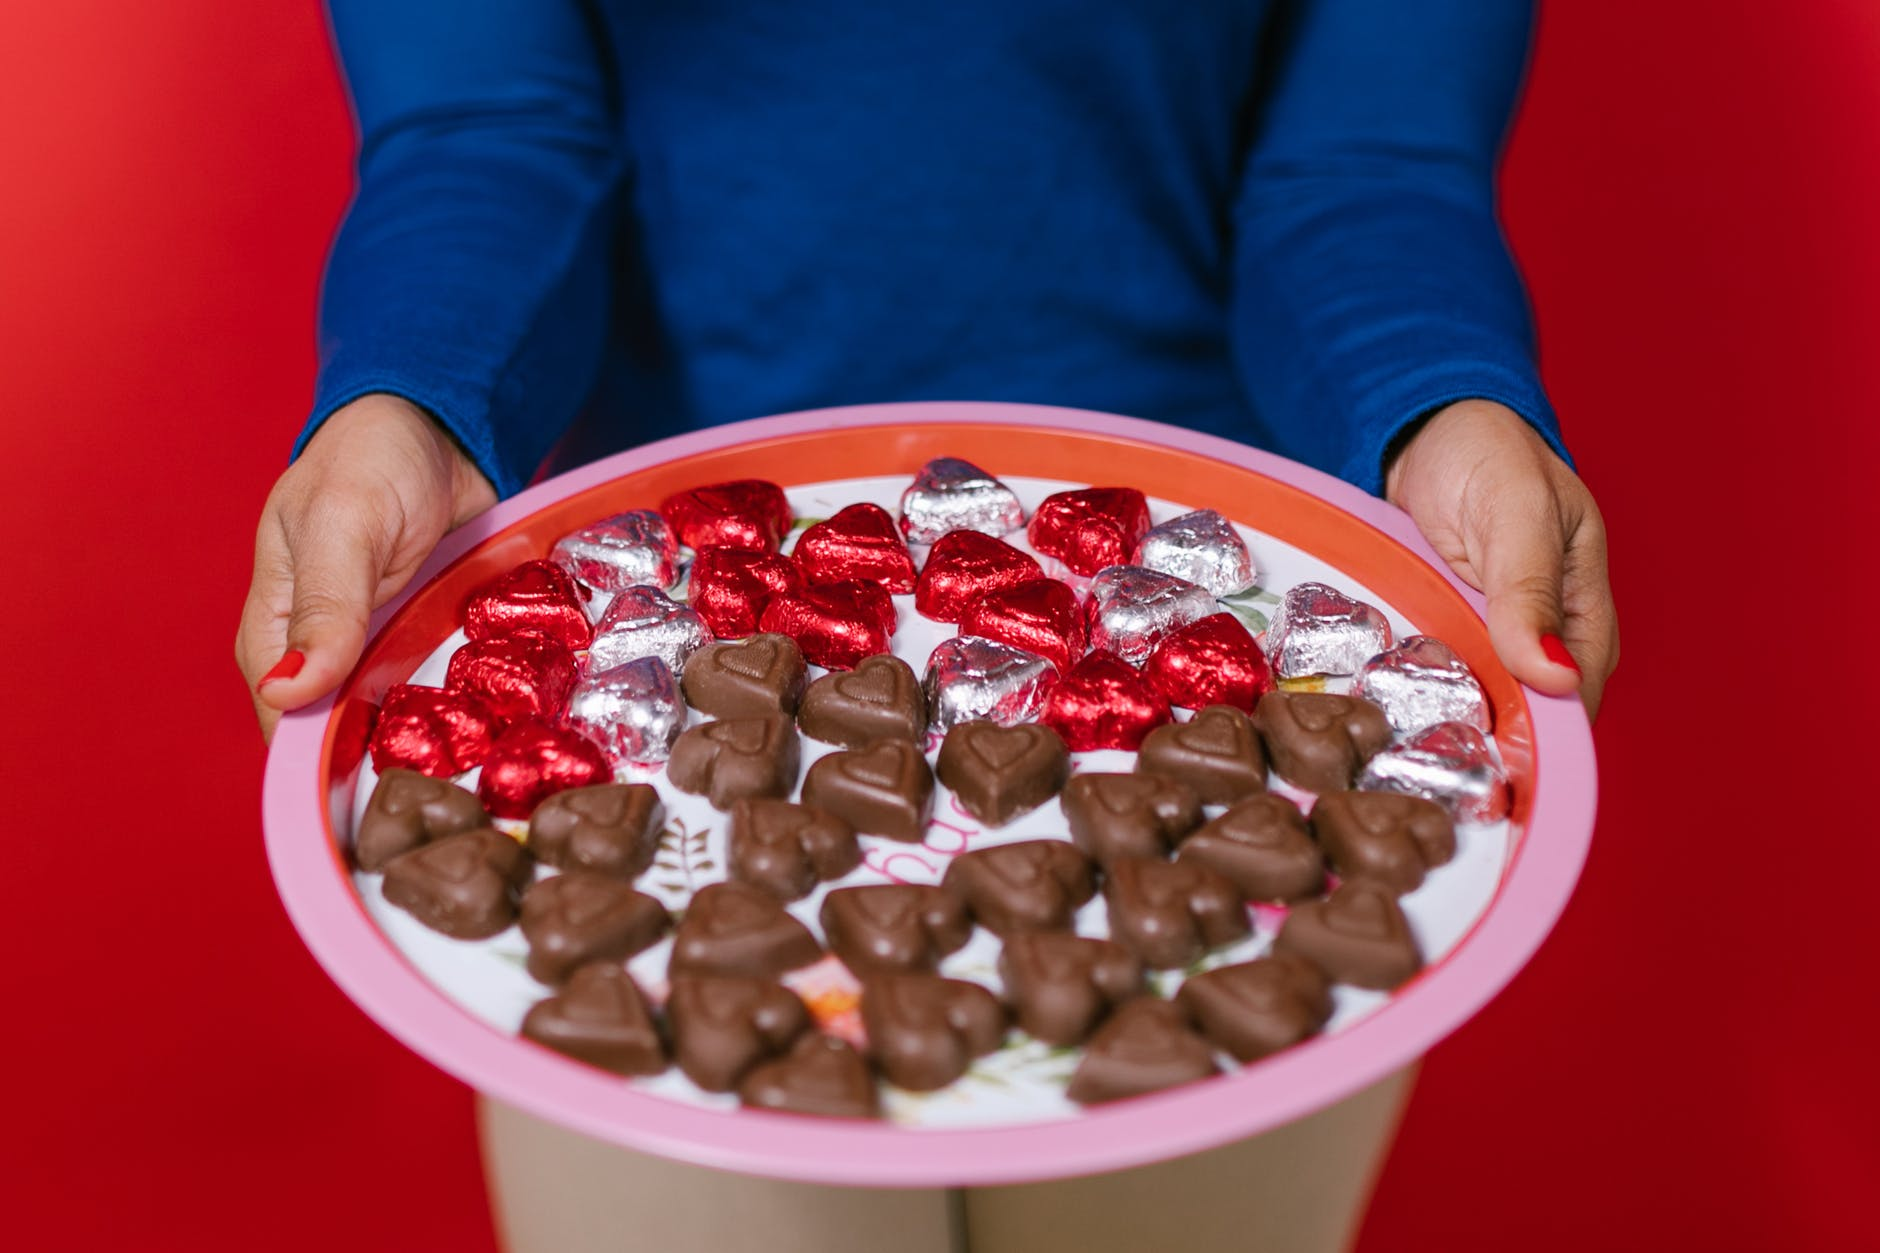 A lady with a blue top holding a tray filled with lots of small heart-shaped milk chocolates.  Some are wrapped with a silver or a red paper